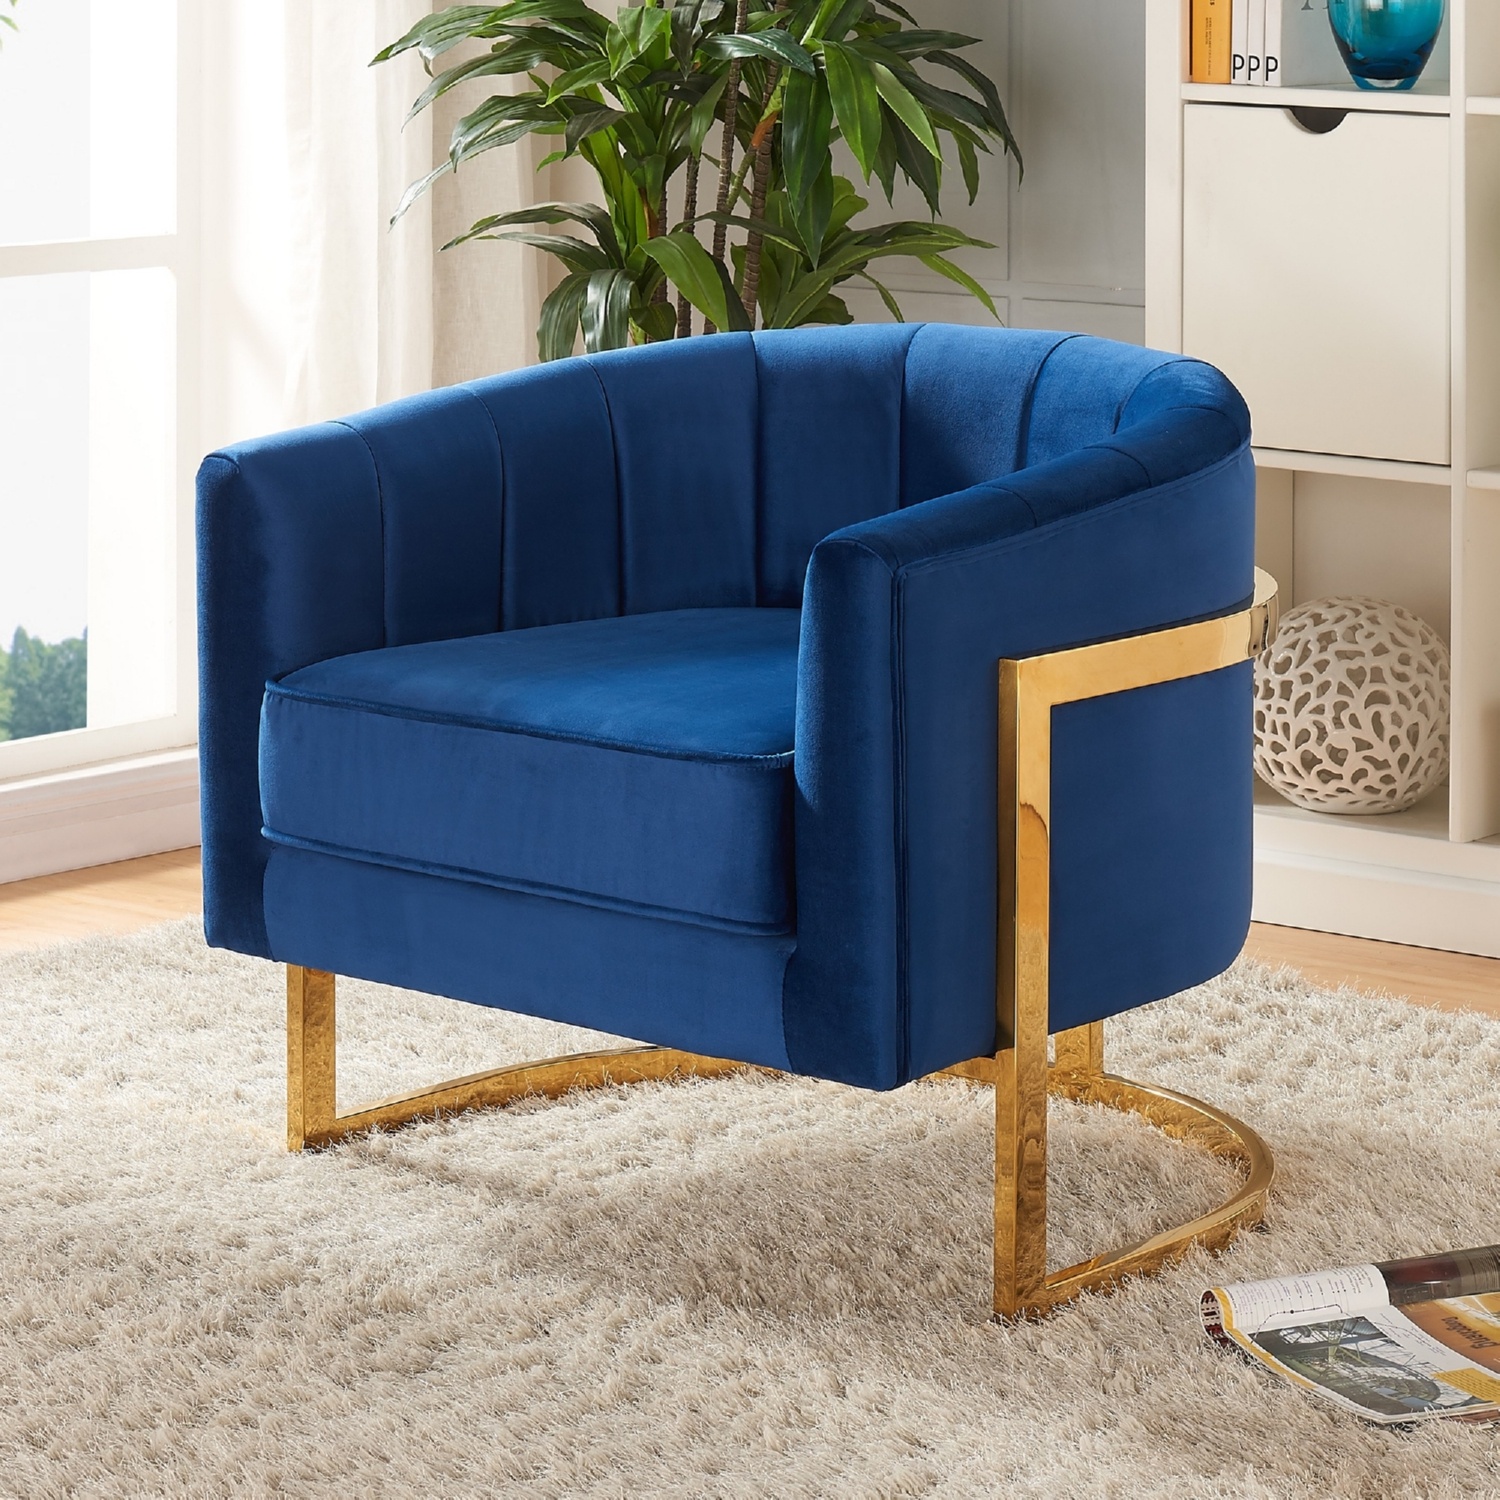 Gentil Meridian Furniture Carter Navy Velvet Accent Chair On Gold Stainless Base  W/ Round Back